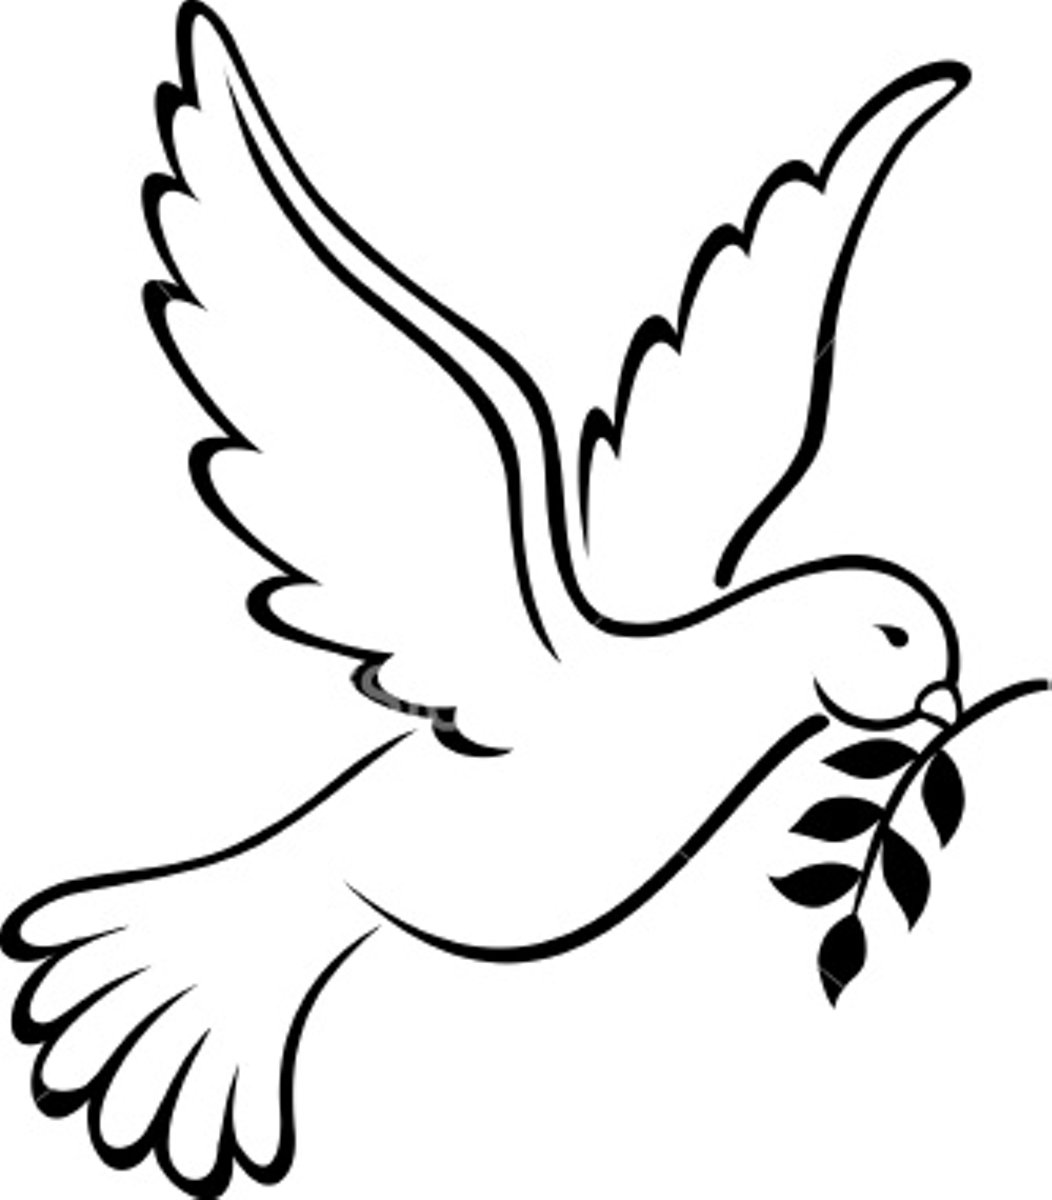 Christian peace and unity and love clipart black and white.